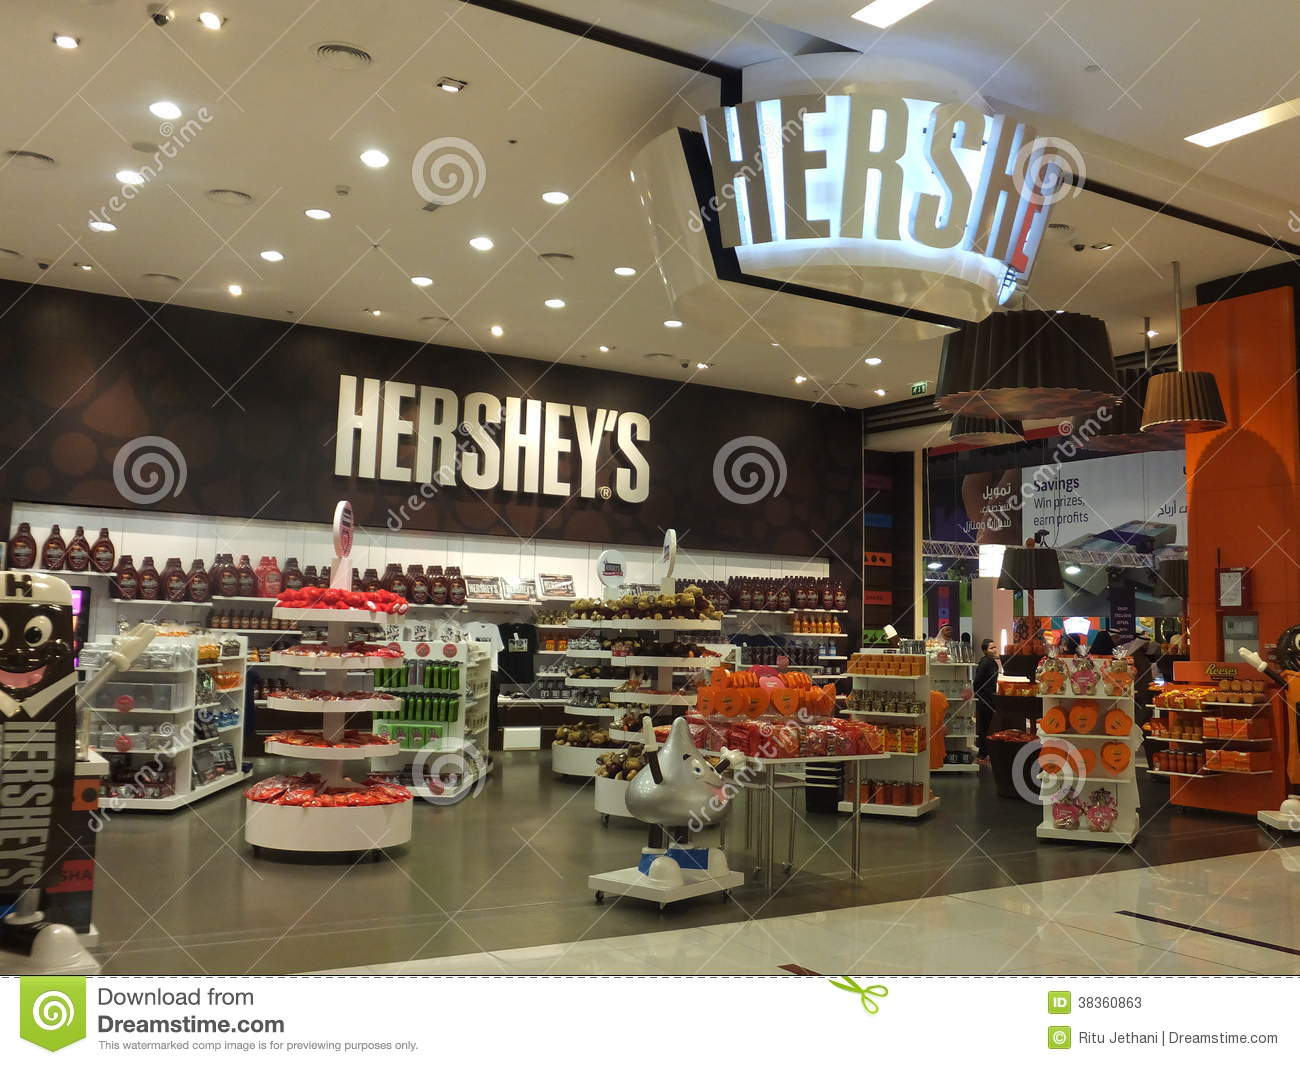 hershey chocolate valentine's day